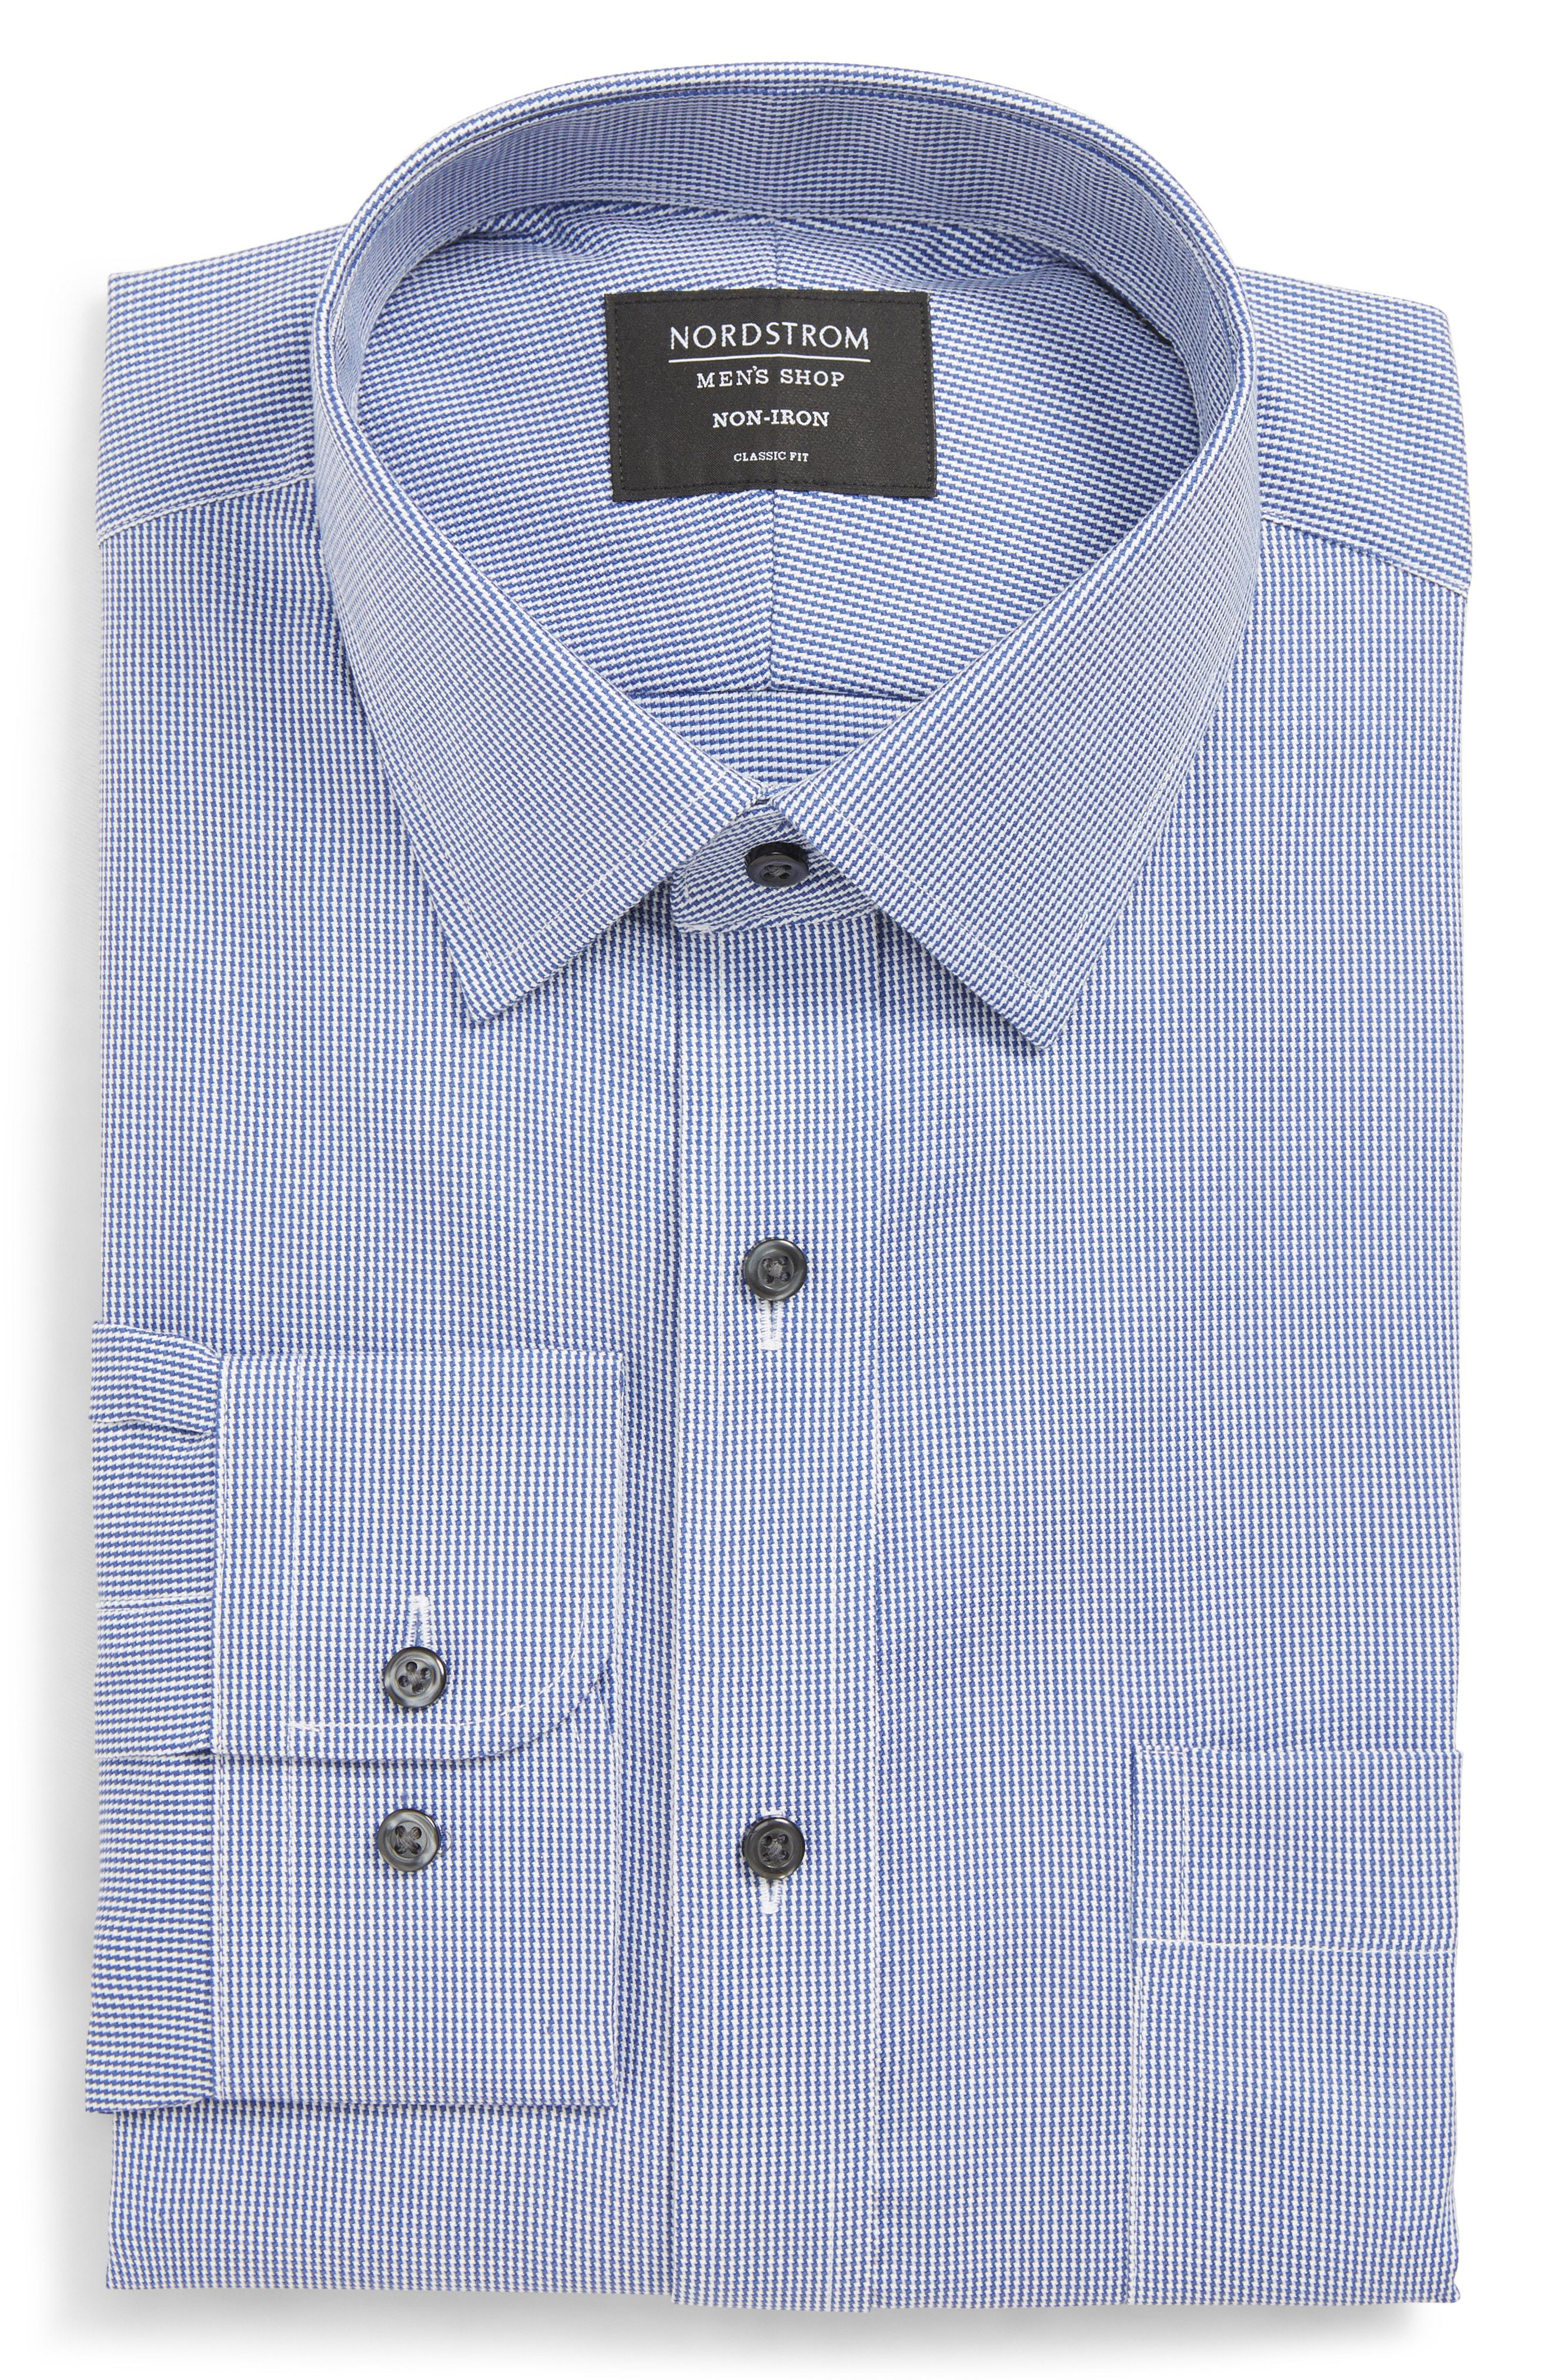 096b698f6b32a Nordstrom - Blue Traditional Fit Non-iron Solid Dress Shirt for Men - Lyst.  View fullscreen